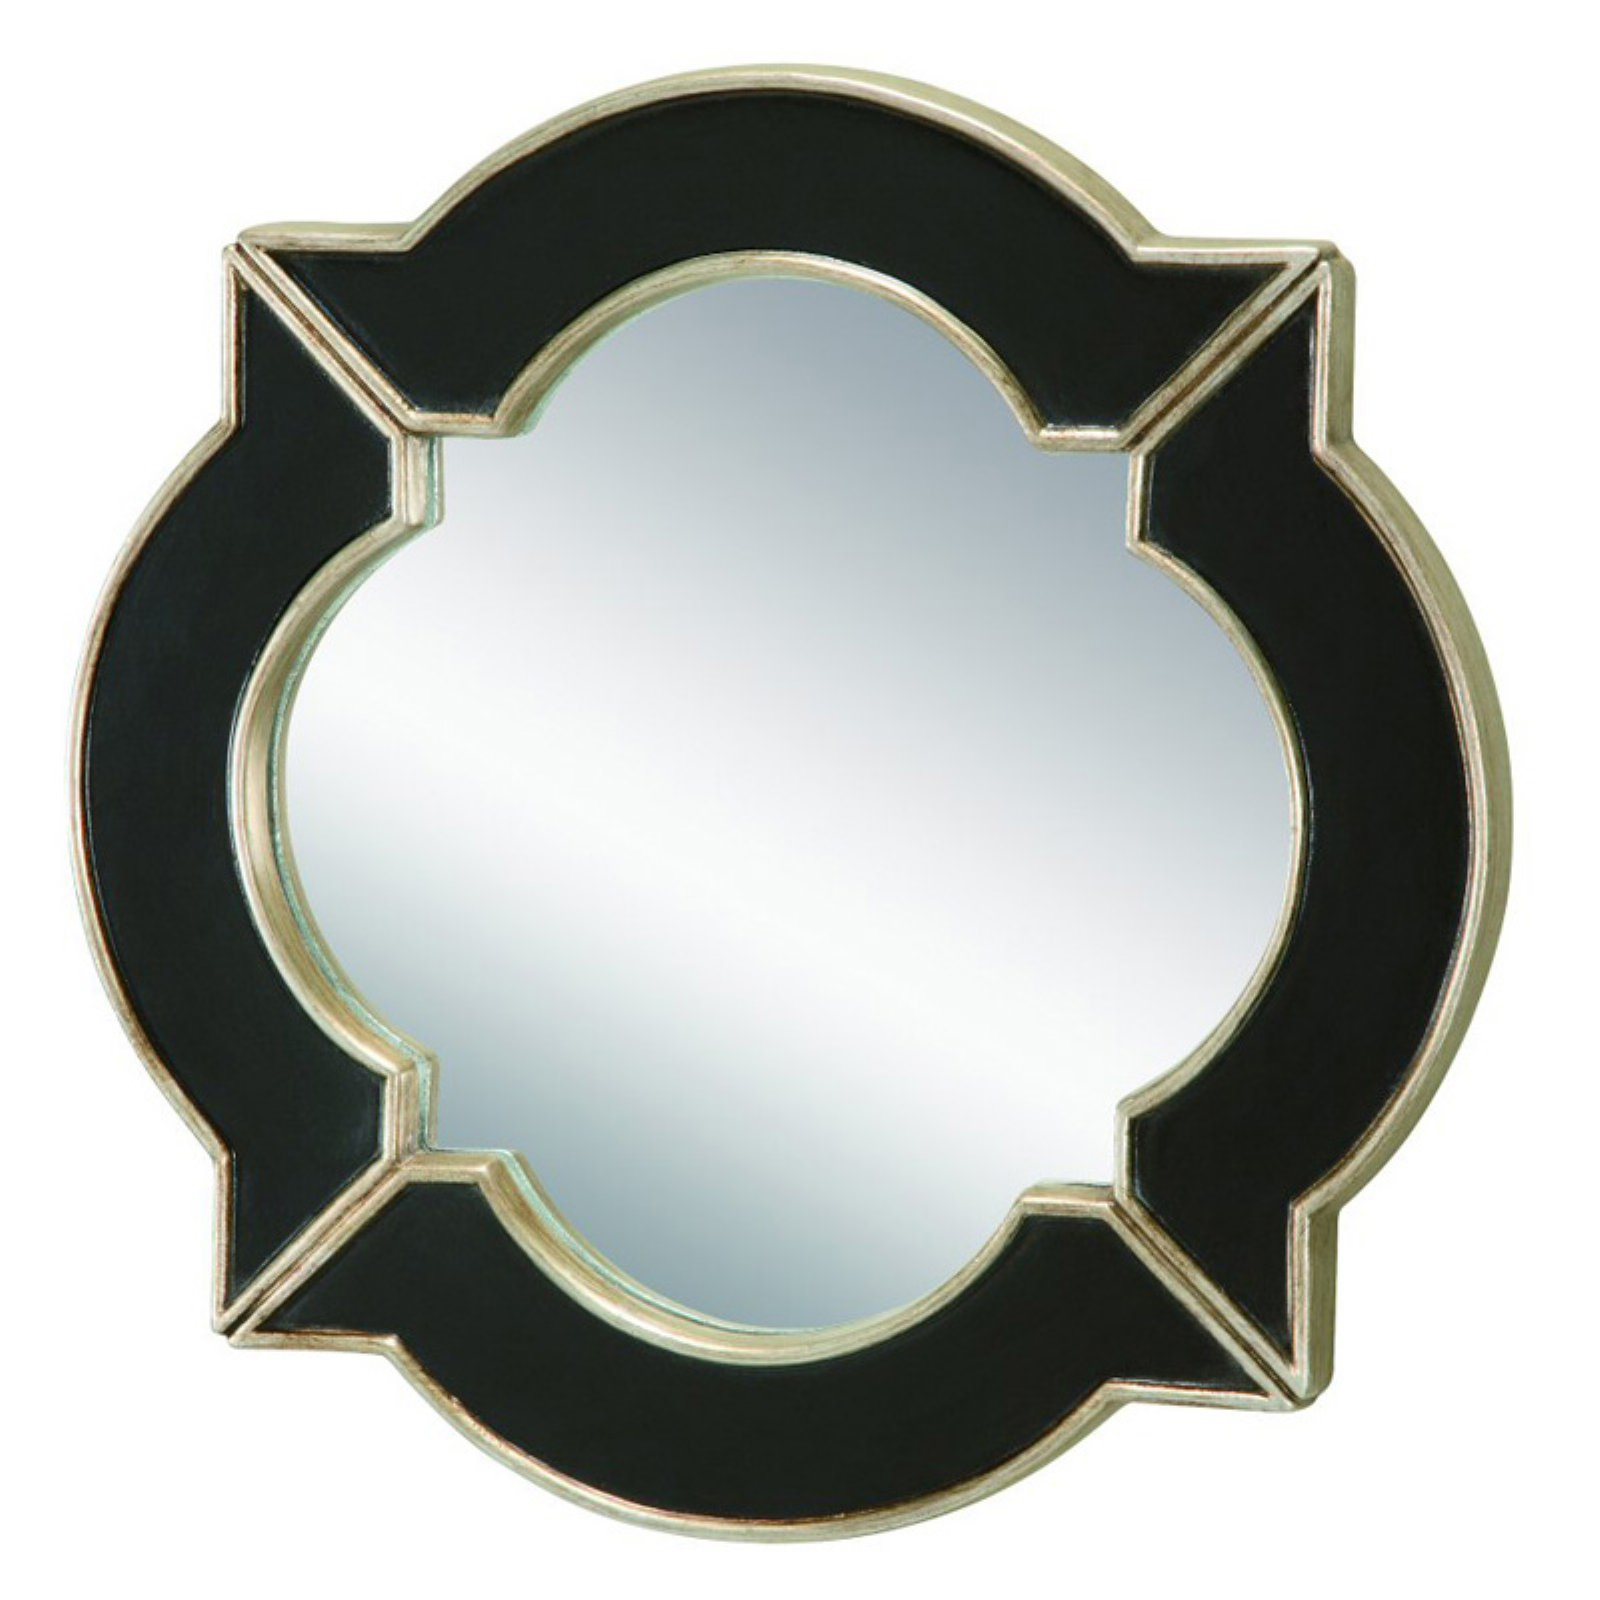 Sterling Lilliput Quatrefoil Wall Mirror - 16 in. diam.